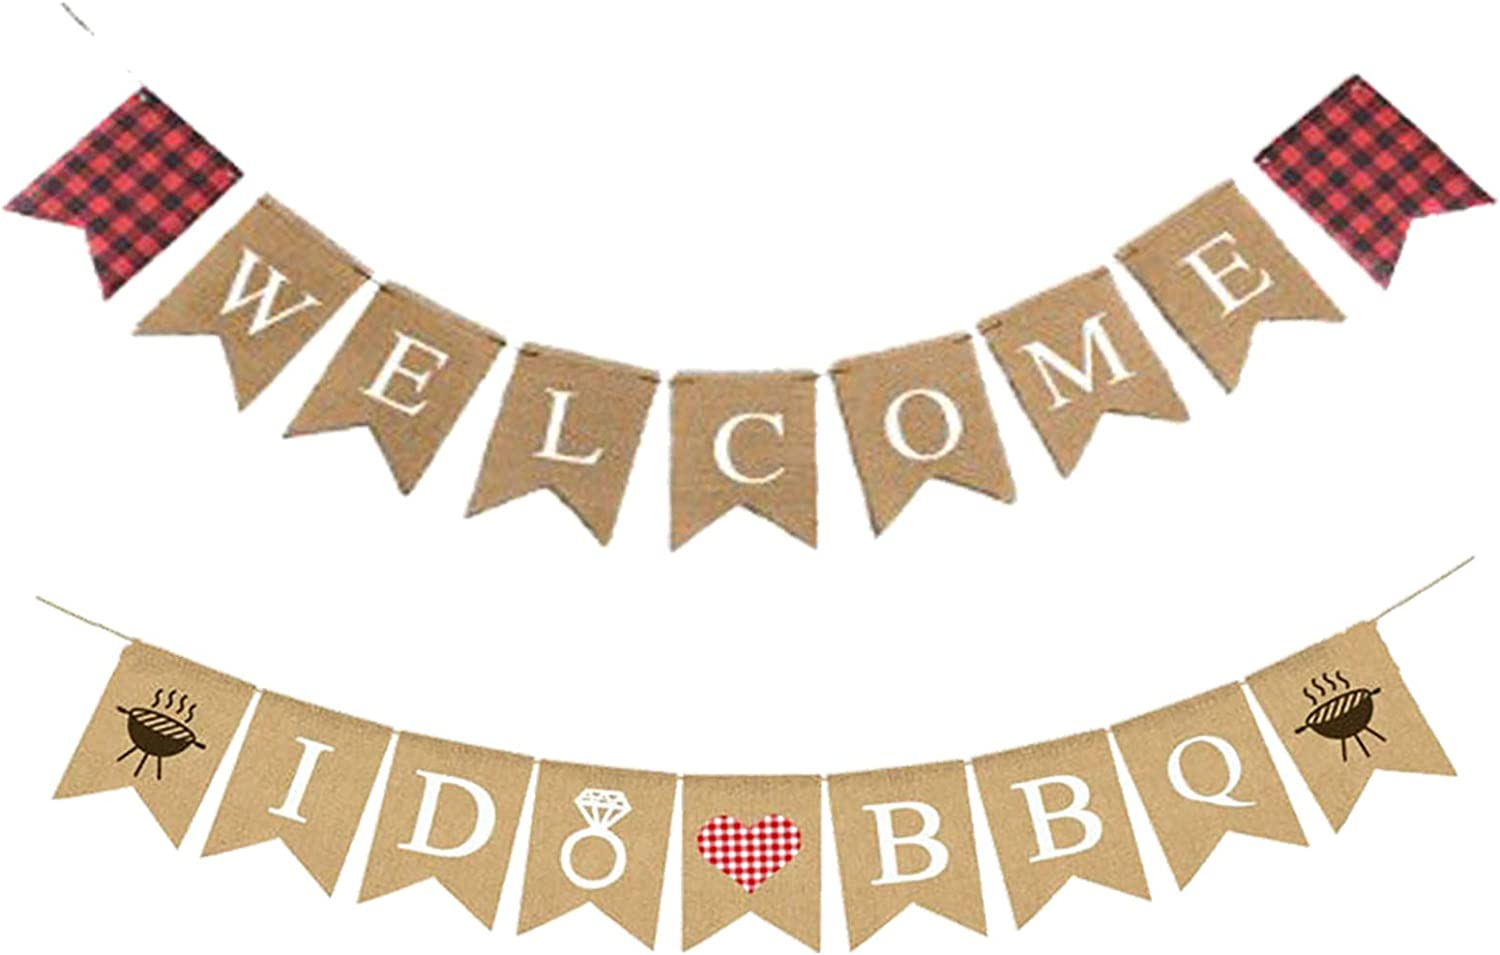 VIDELLY Jute Burlap Welcome Banner, I Do BBQ Banner Burlap with Grill BBQ Theme Picnic Party Banner Wedding Shower Bridal Shower Engagement Party Decoration Supply